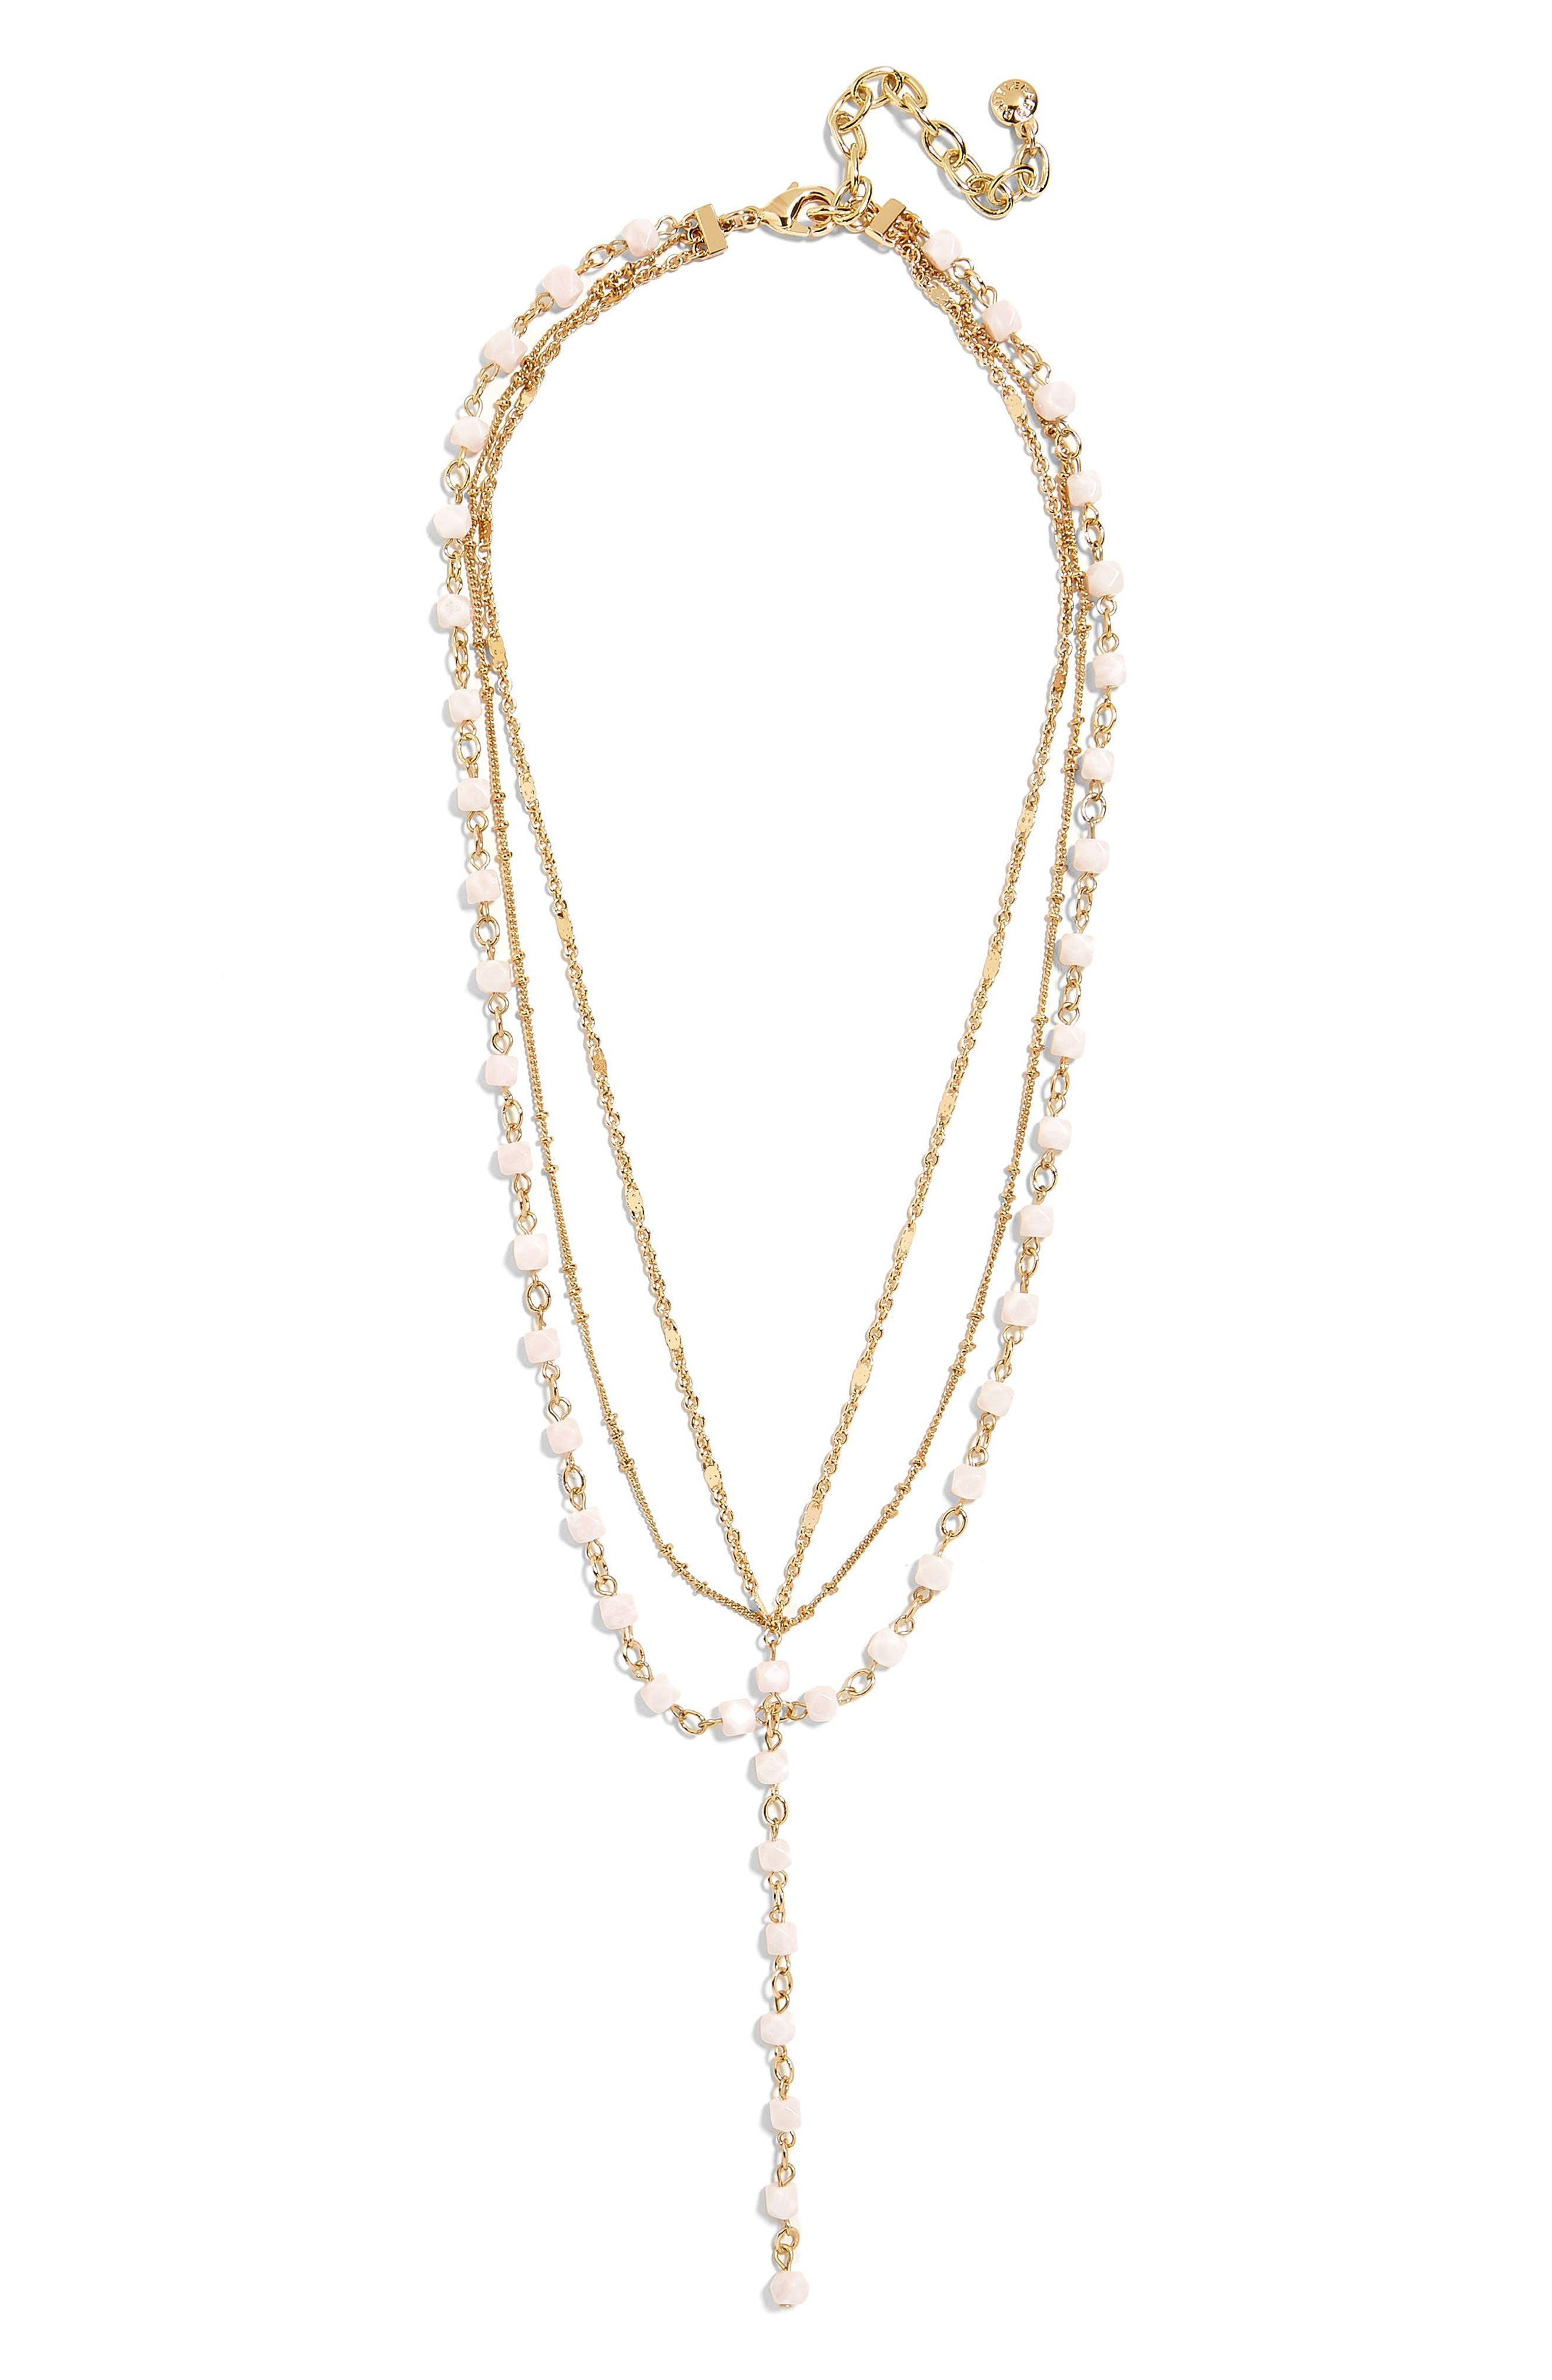 Odelia Layered Y-Chain Necklace,                             Main thumbnail 1, color,                             Blush